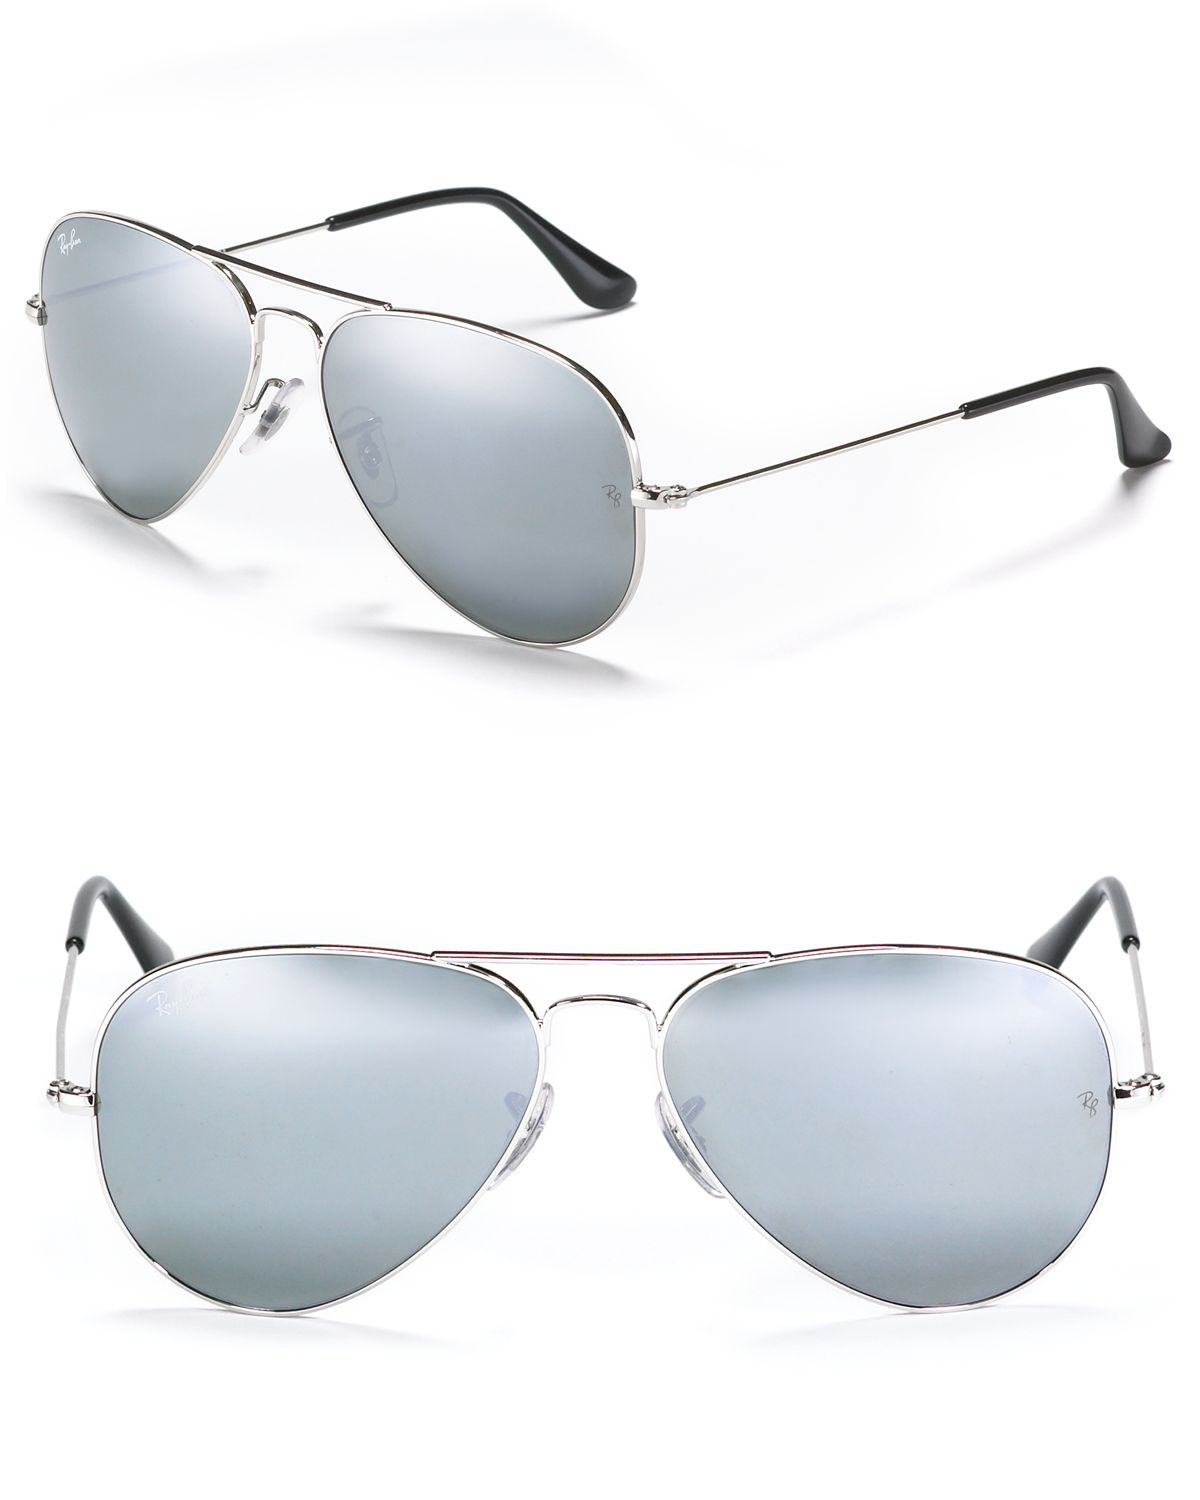 Ray-Ban Aviator Sunglasses with Mirrored Lenses | Bloomingdale's